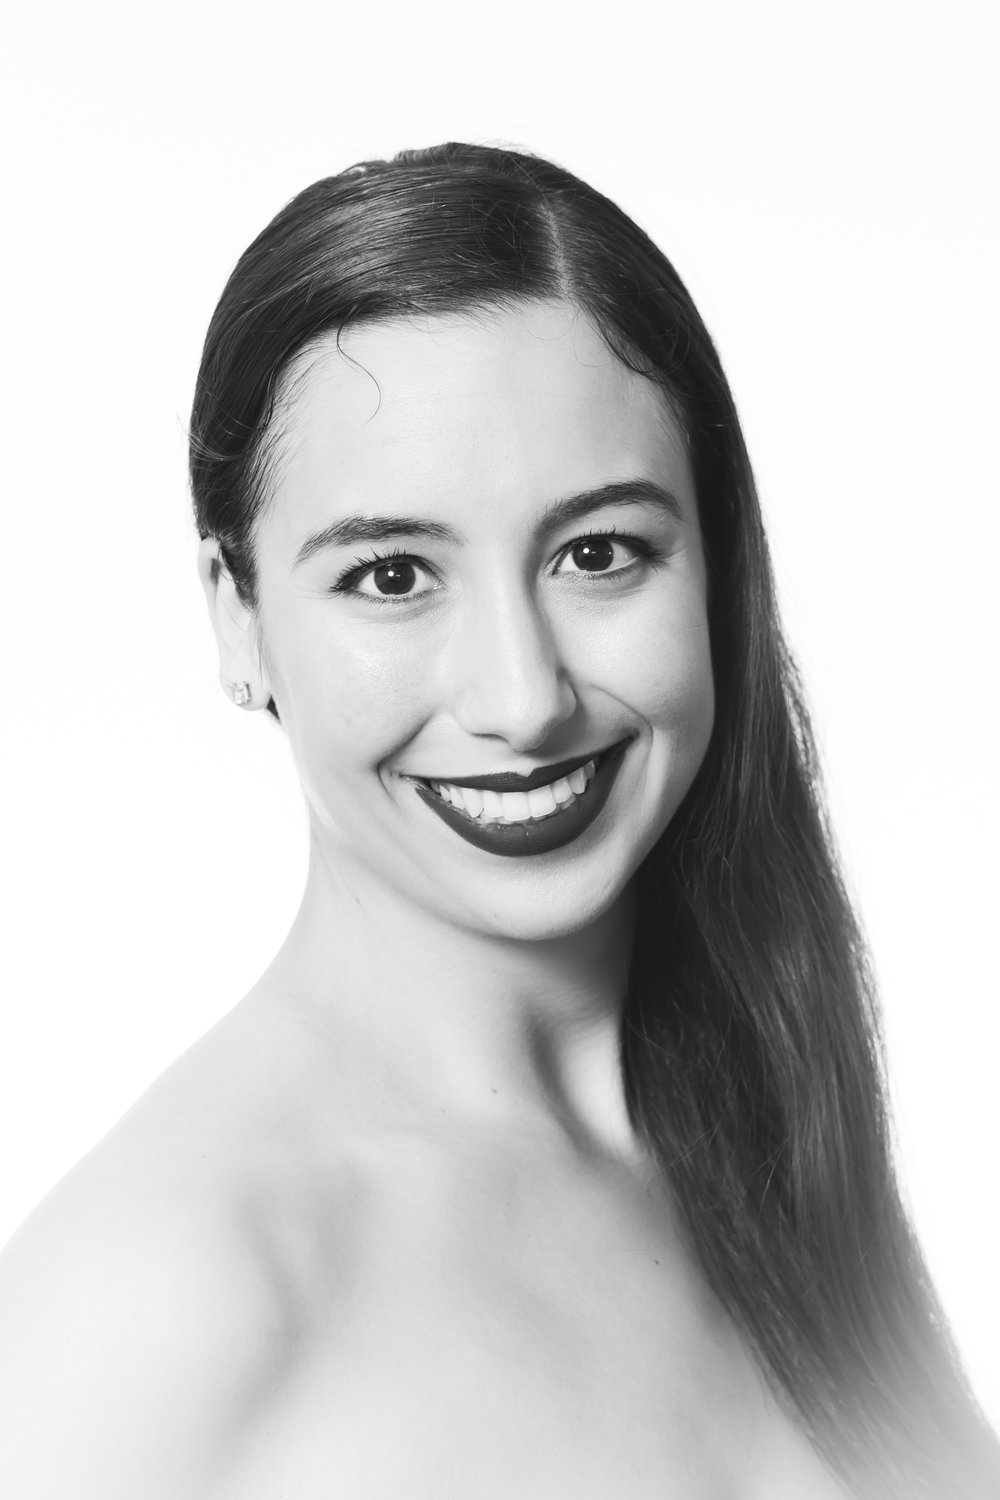 "Alexia Cannizzaro Company Artist   Alexia's love of dancing began at the age of 5, when she began taking ballet lessons at Anita Coutts School of Dance, Ballarat. Following 10 years of classical training in her hometown Ballarat, Alexia was accepted into The Australian Ballet School where she trained from 2011 until 2013.  Late 2013, Alexia moved to Sydney to begin training with Studio Tibor where she joined the pre-professional full time training program for the next 18 months. During this time Alexia was accepted and performed at the Youth America Grand Prix Finals in New York City (2014).  After returning to Melbourne in 2015, Alexia joined Melbourne City Ballet's pre-professional bridging program ""Finishing Year"" before relocating to Kentucky (USA) to join Louisville Ballet for a two year scholarship with the company as part of their Trainee Program.  Alexia returned home to Melbourne City Ballet in 2017, commencing in the role of Junior Artist with the company during our national tour of A Midsummer Night's Dream 2017."